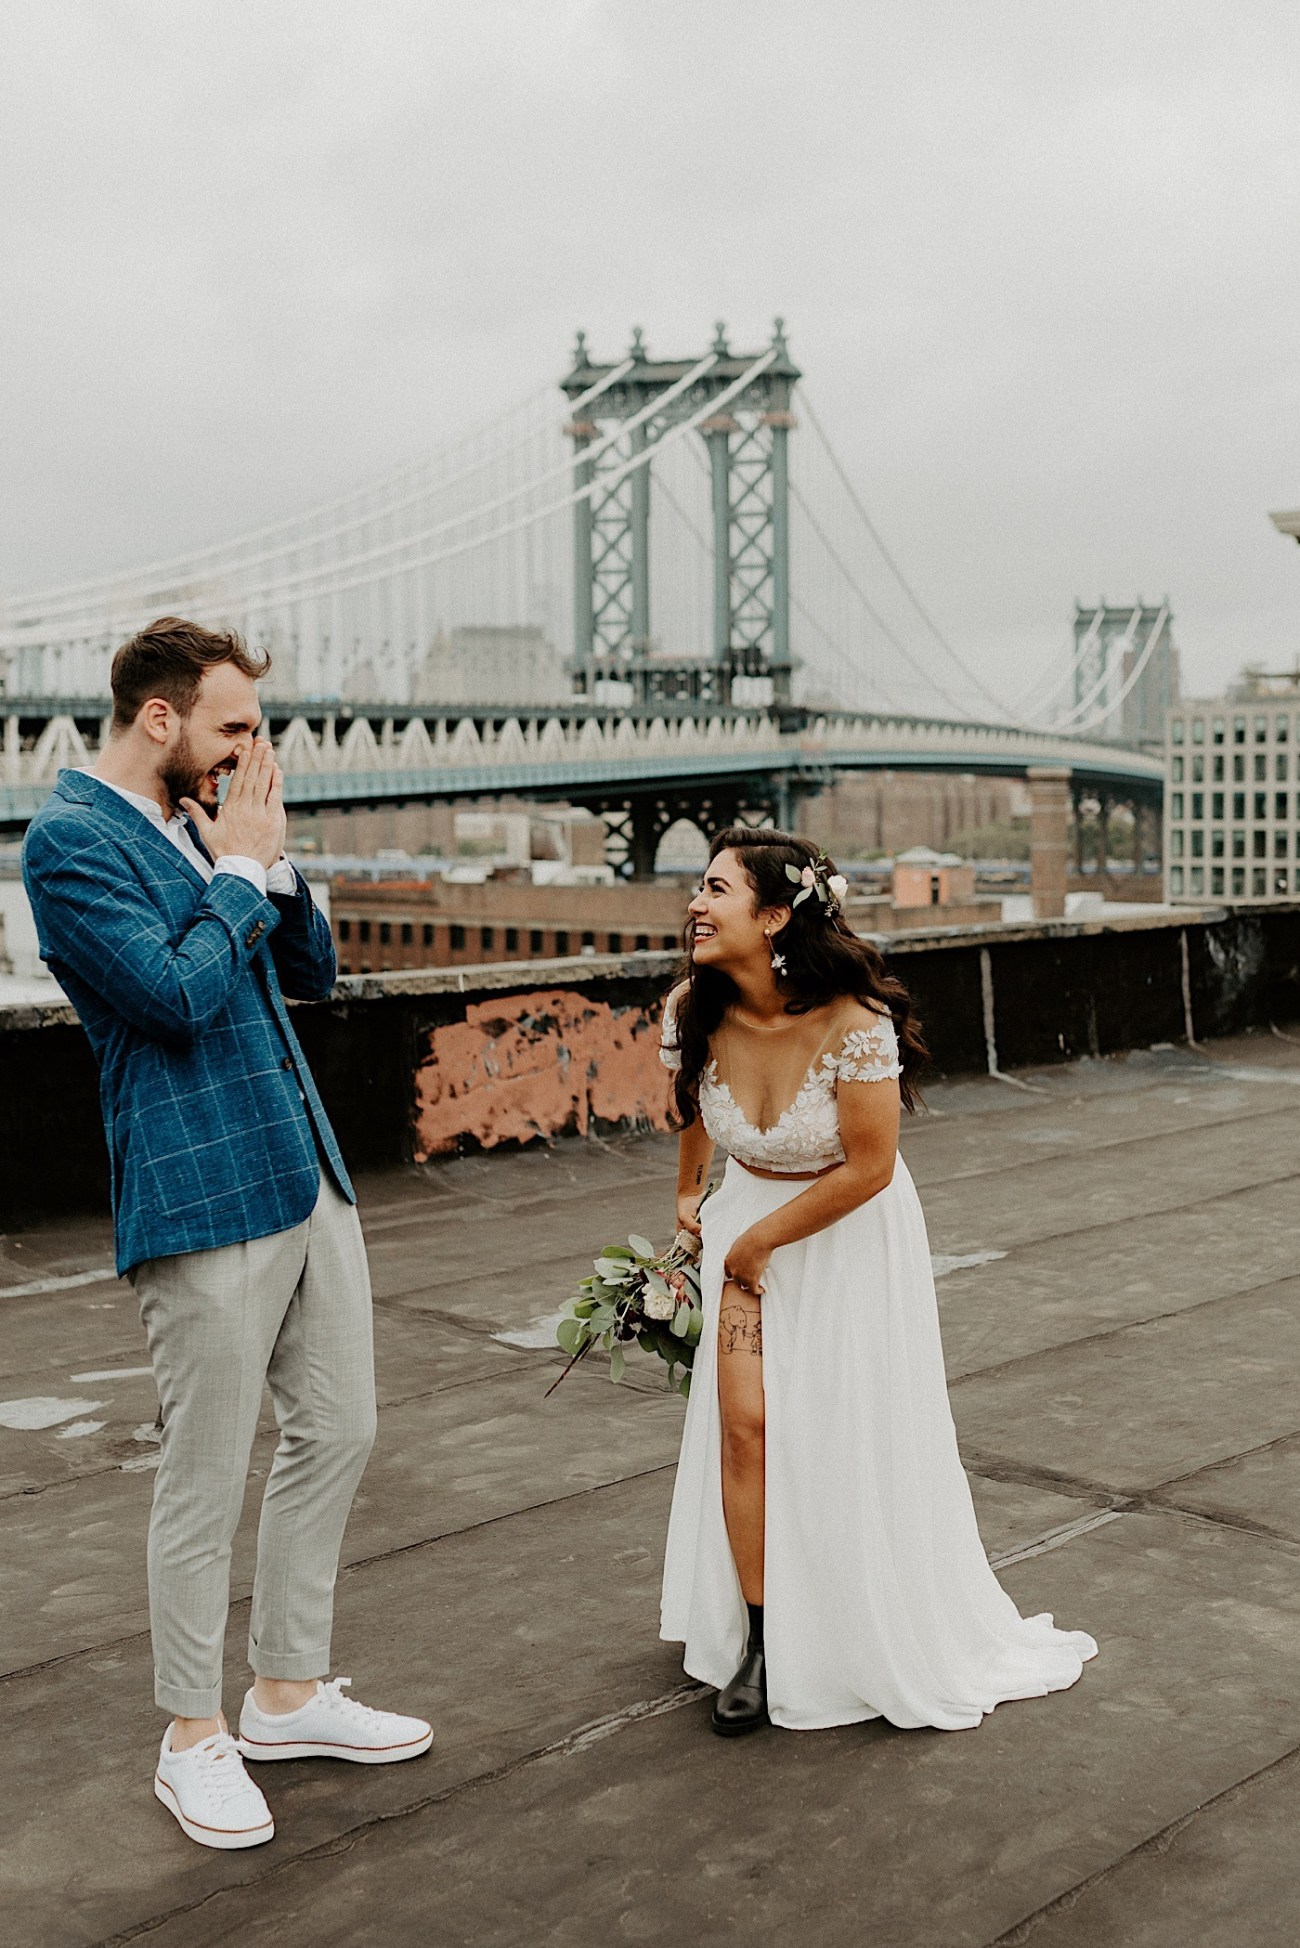 LIC Wedding Greenpoint Wedding LIC Elopement New York Wedding Photographer 078